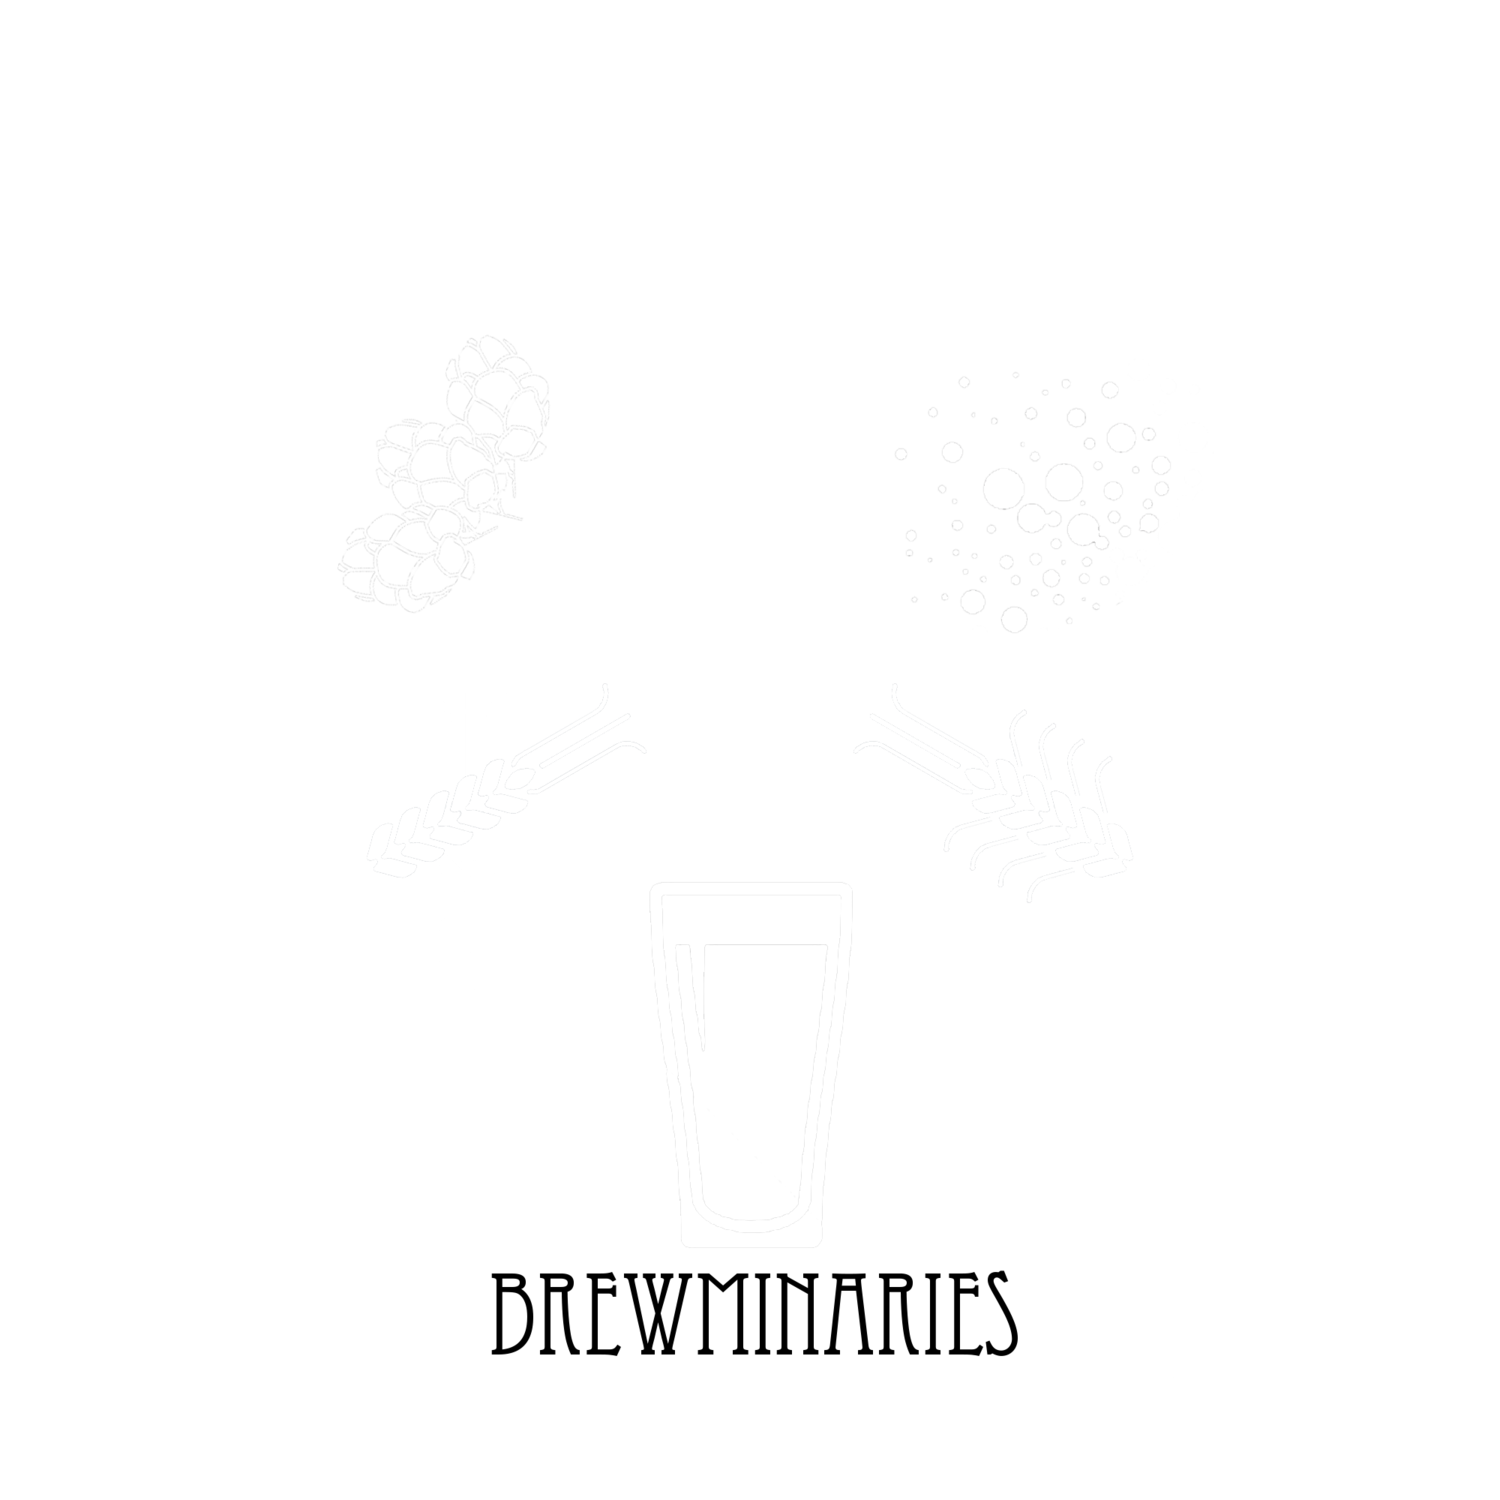 Brewminaries